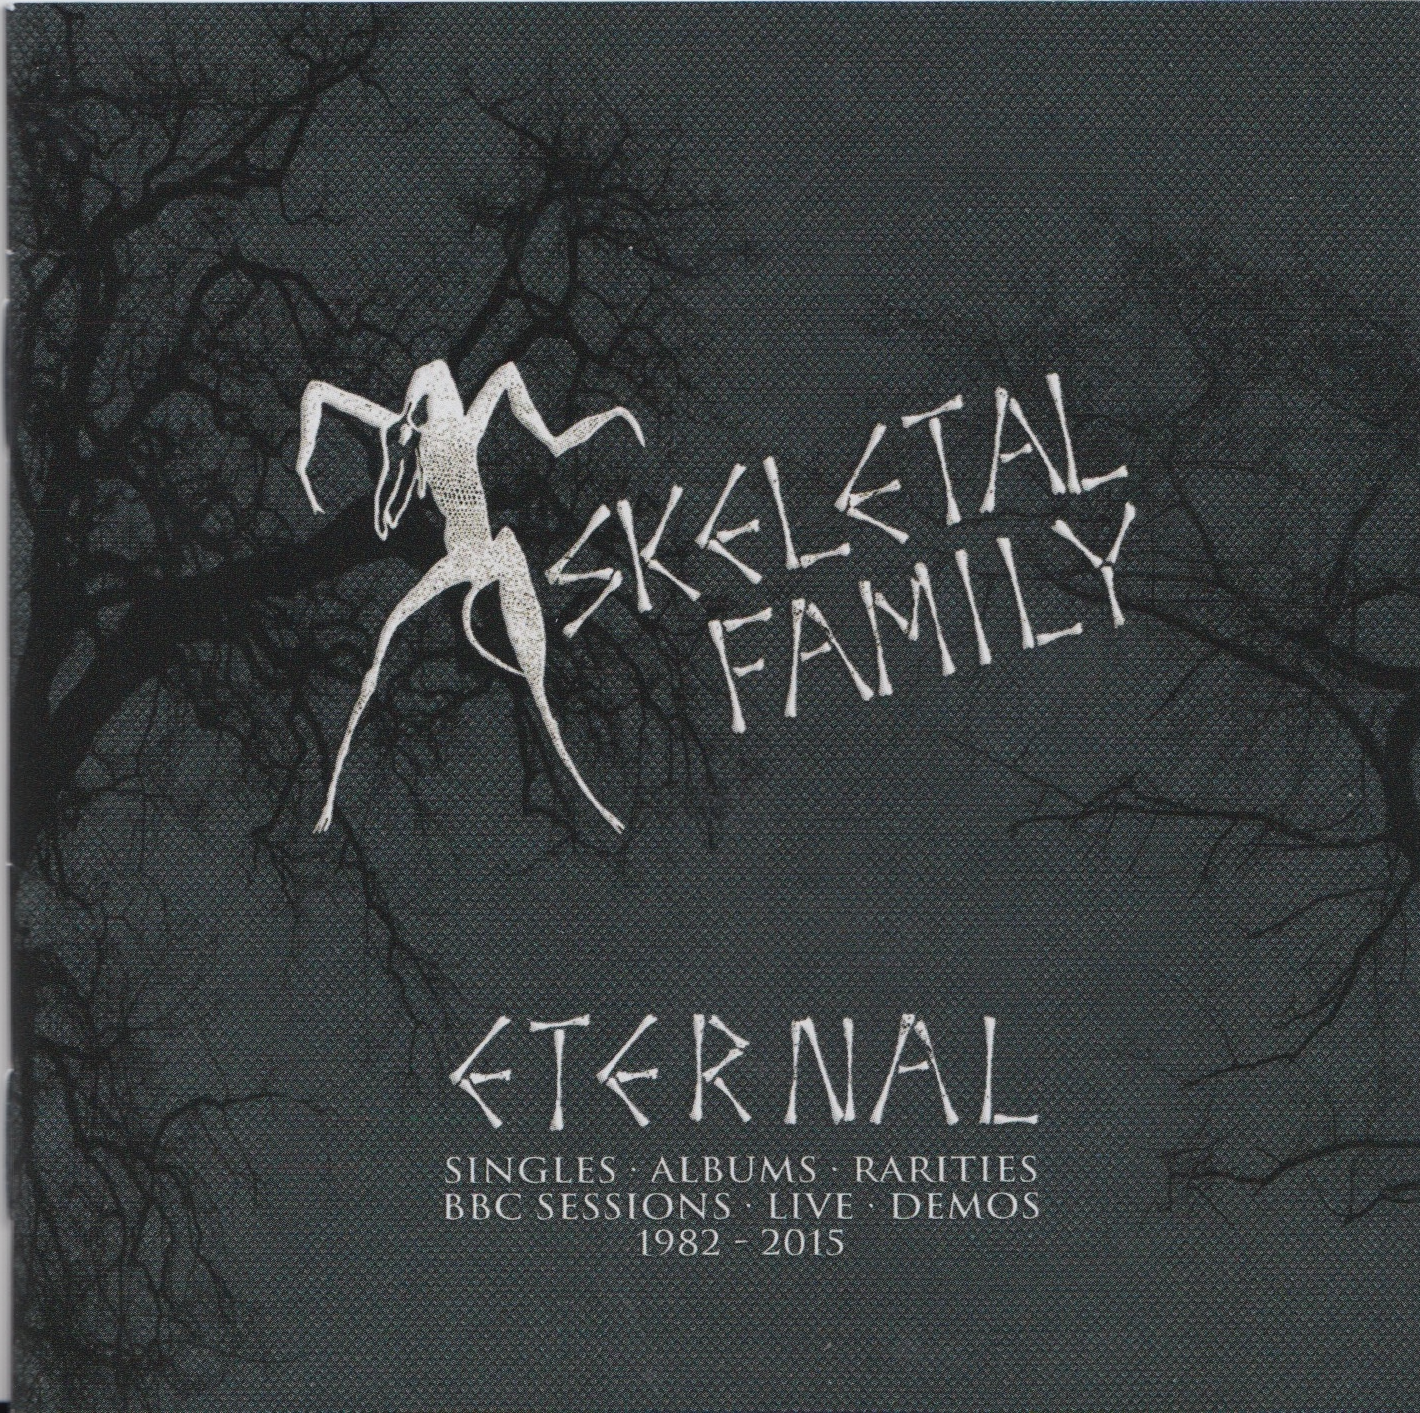 Skeletal Family – Eternal – CD Boxset review